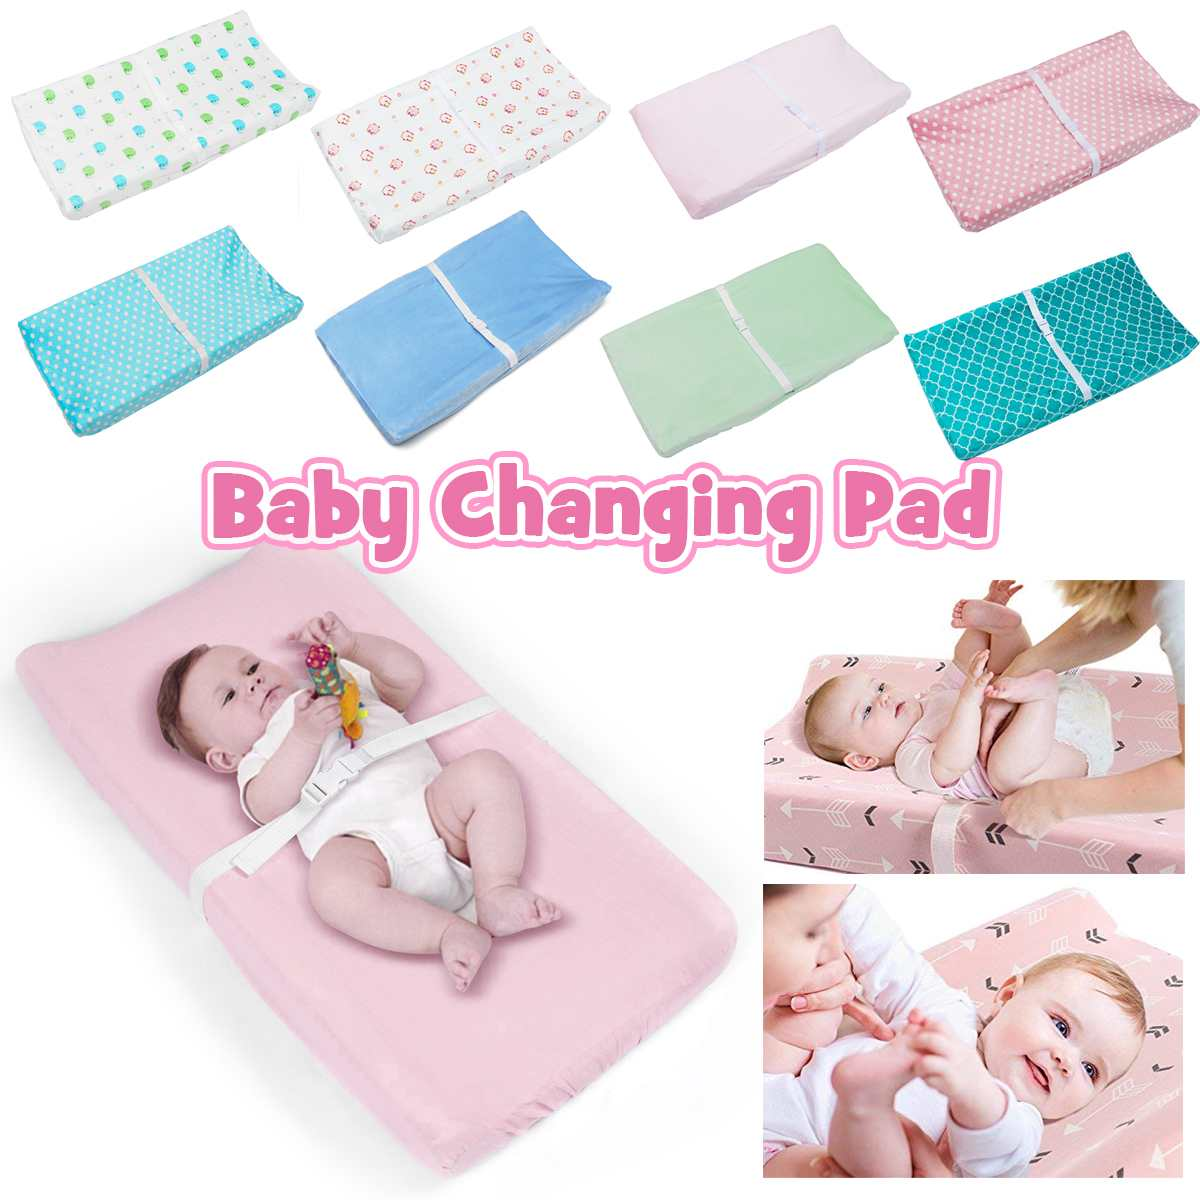 Baby Nappy Changing Table Pad Soft Changing Cover Fabric Waterproof Baby Mattress Bed Sheet Infant Cambiador Bebe Mat Cover